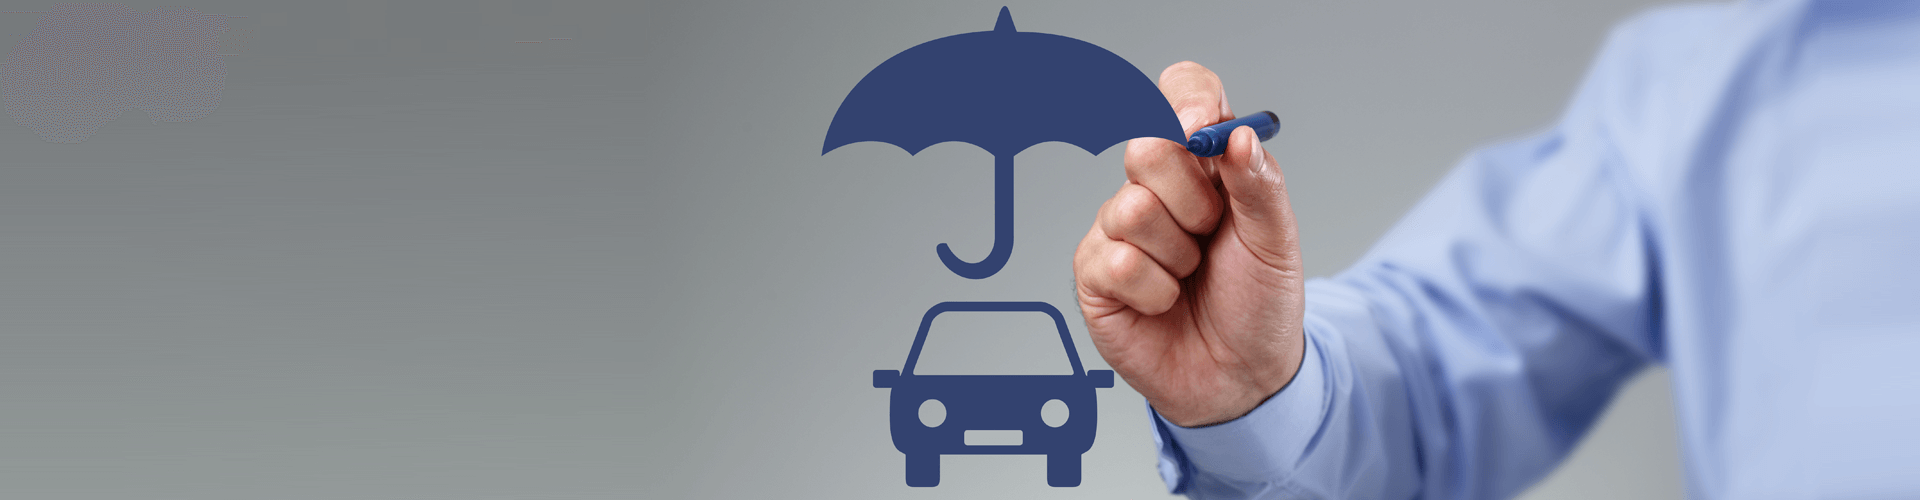 How Umbrella Insurance Work? and What it covers?